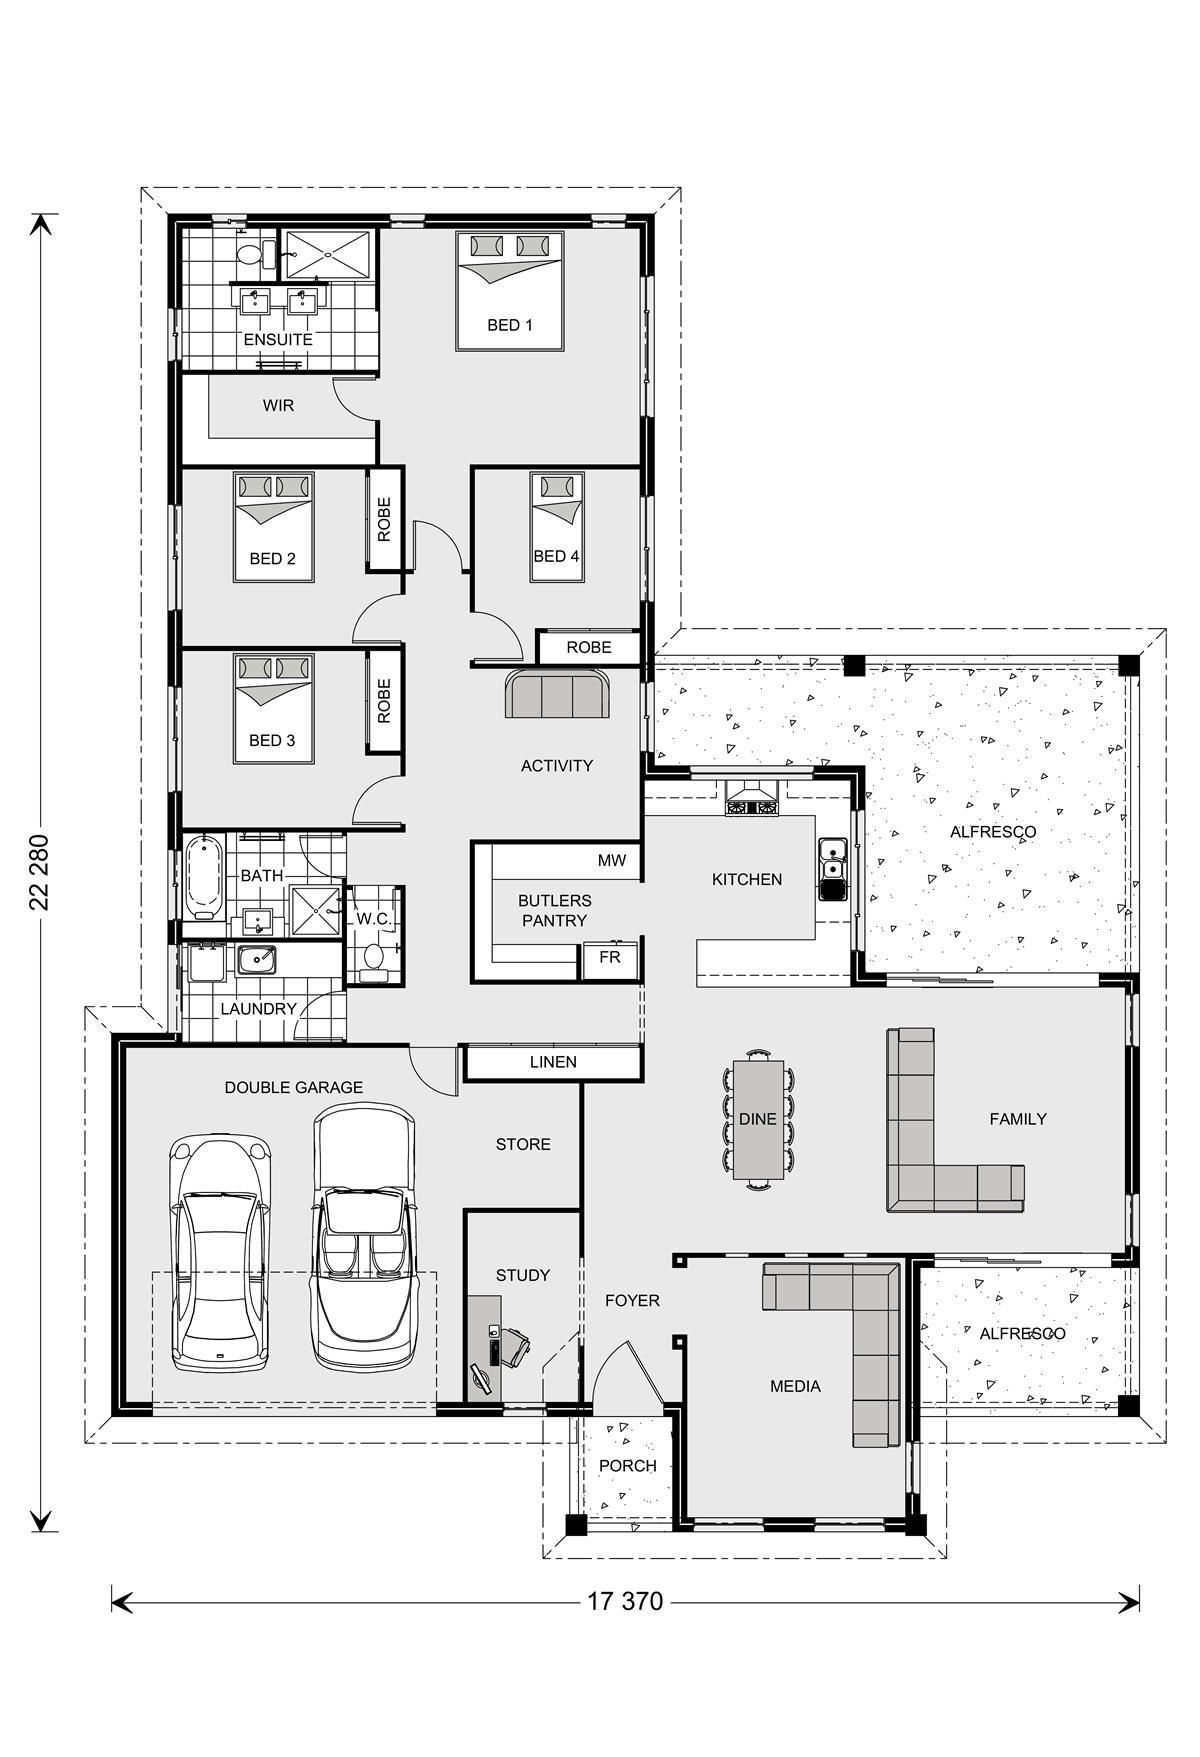 21 Totally Cozy Floor Plan 2 Story Butler Pantry To Get Mid Century Accent Home Design Floor Plans Bungalow House Plans Floor Plans